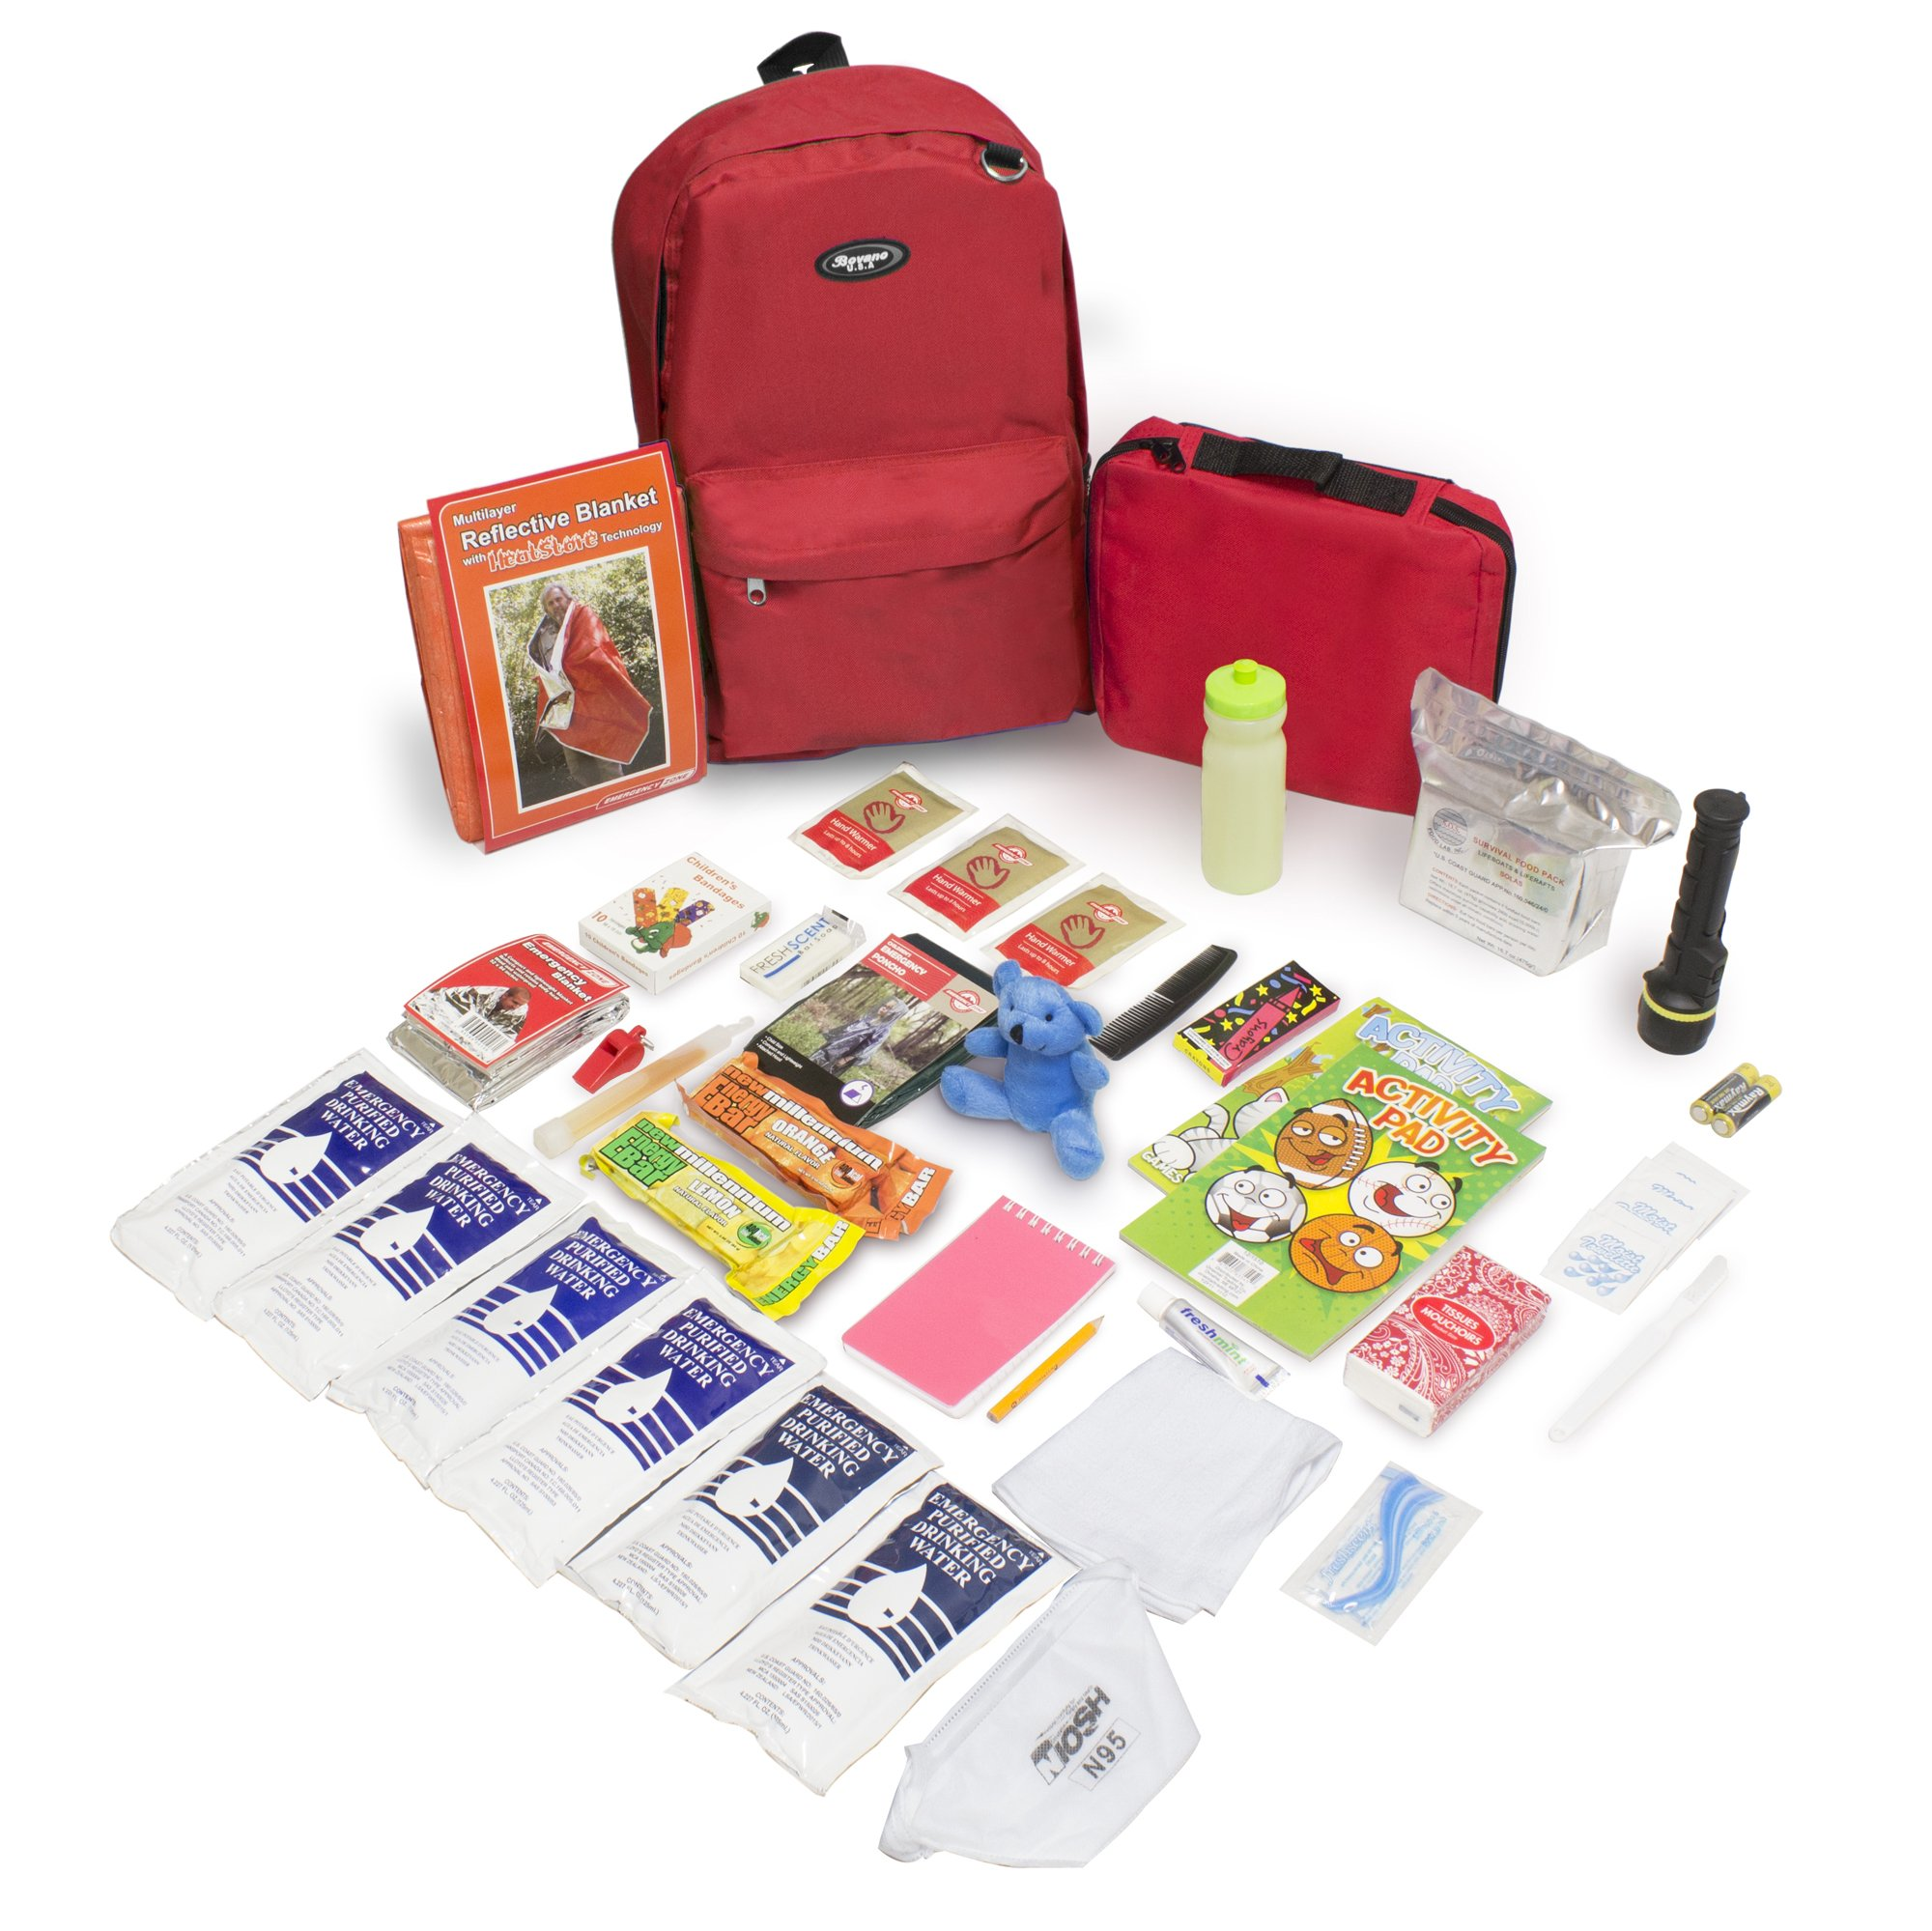 Keep-Me-Safe Children's Deluxe 72-Hr Emergency Survival Kit, Red by Emergency Zone